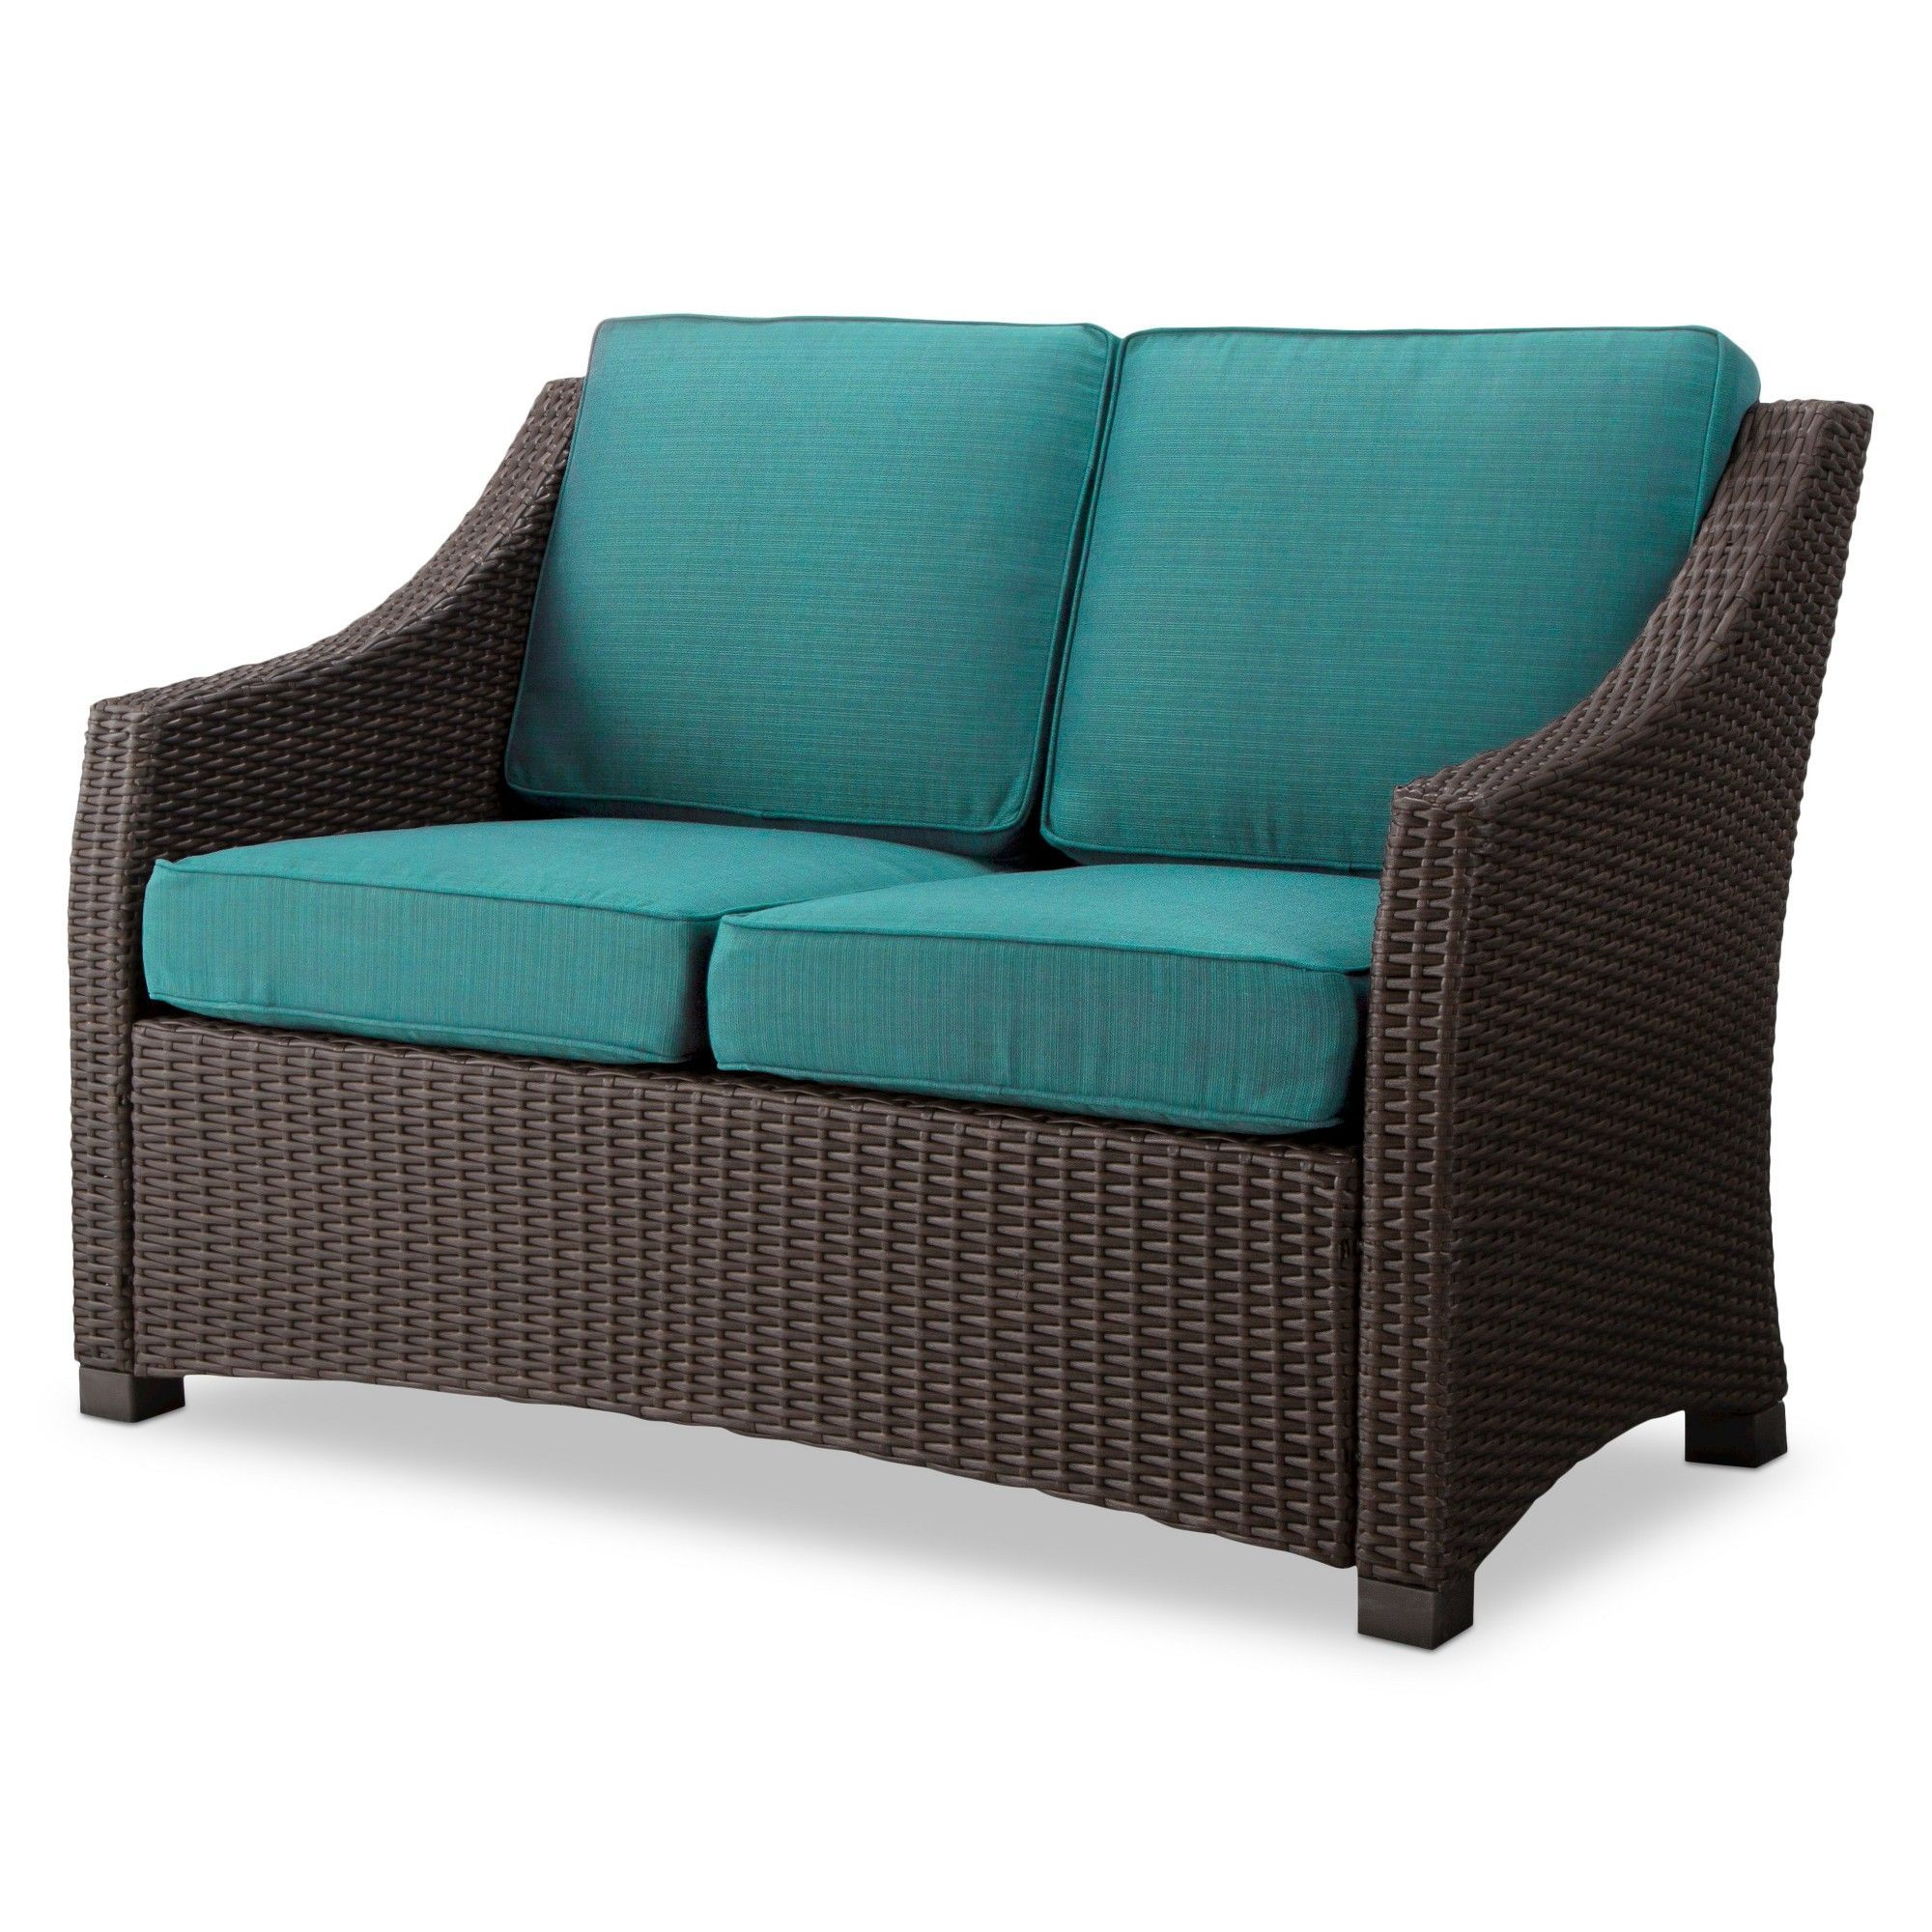 Belvedere Wicker Patio Loveseat Turquoise Threshold